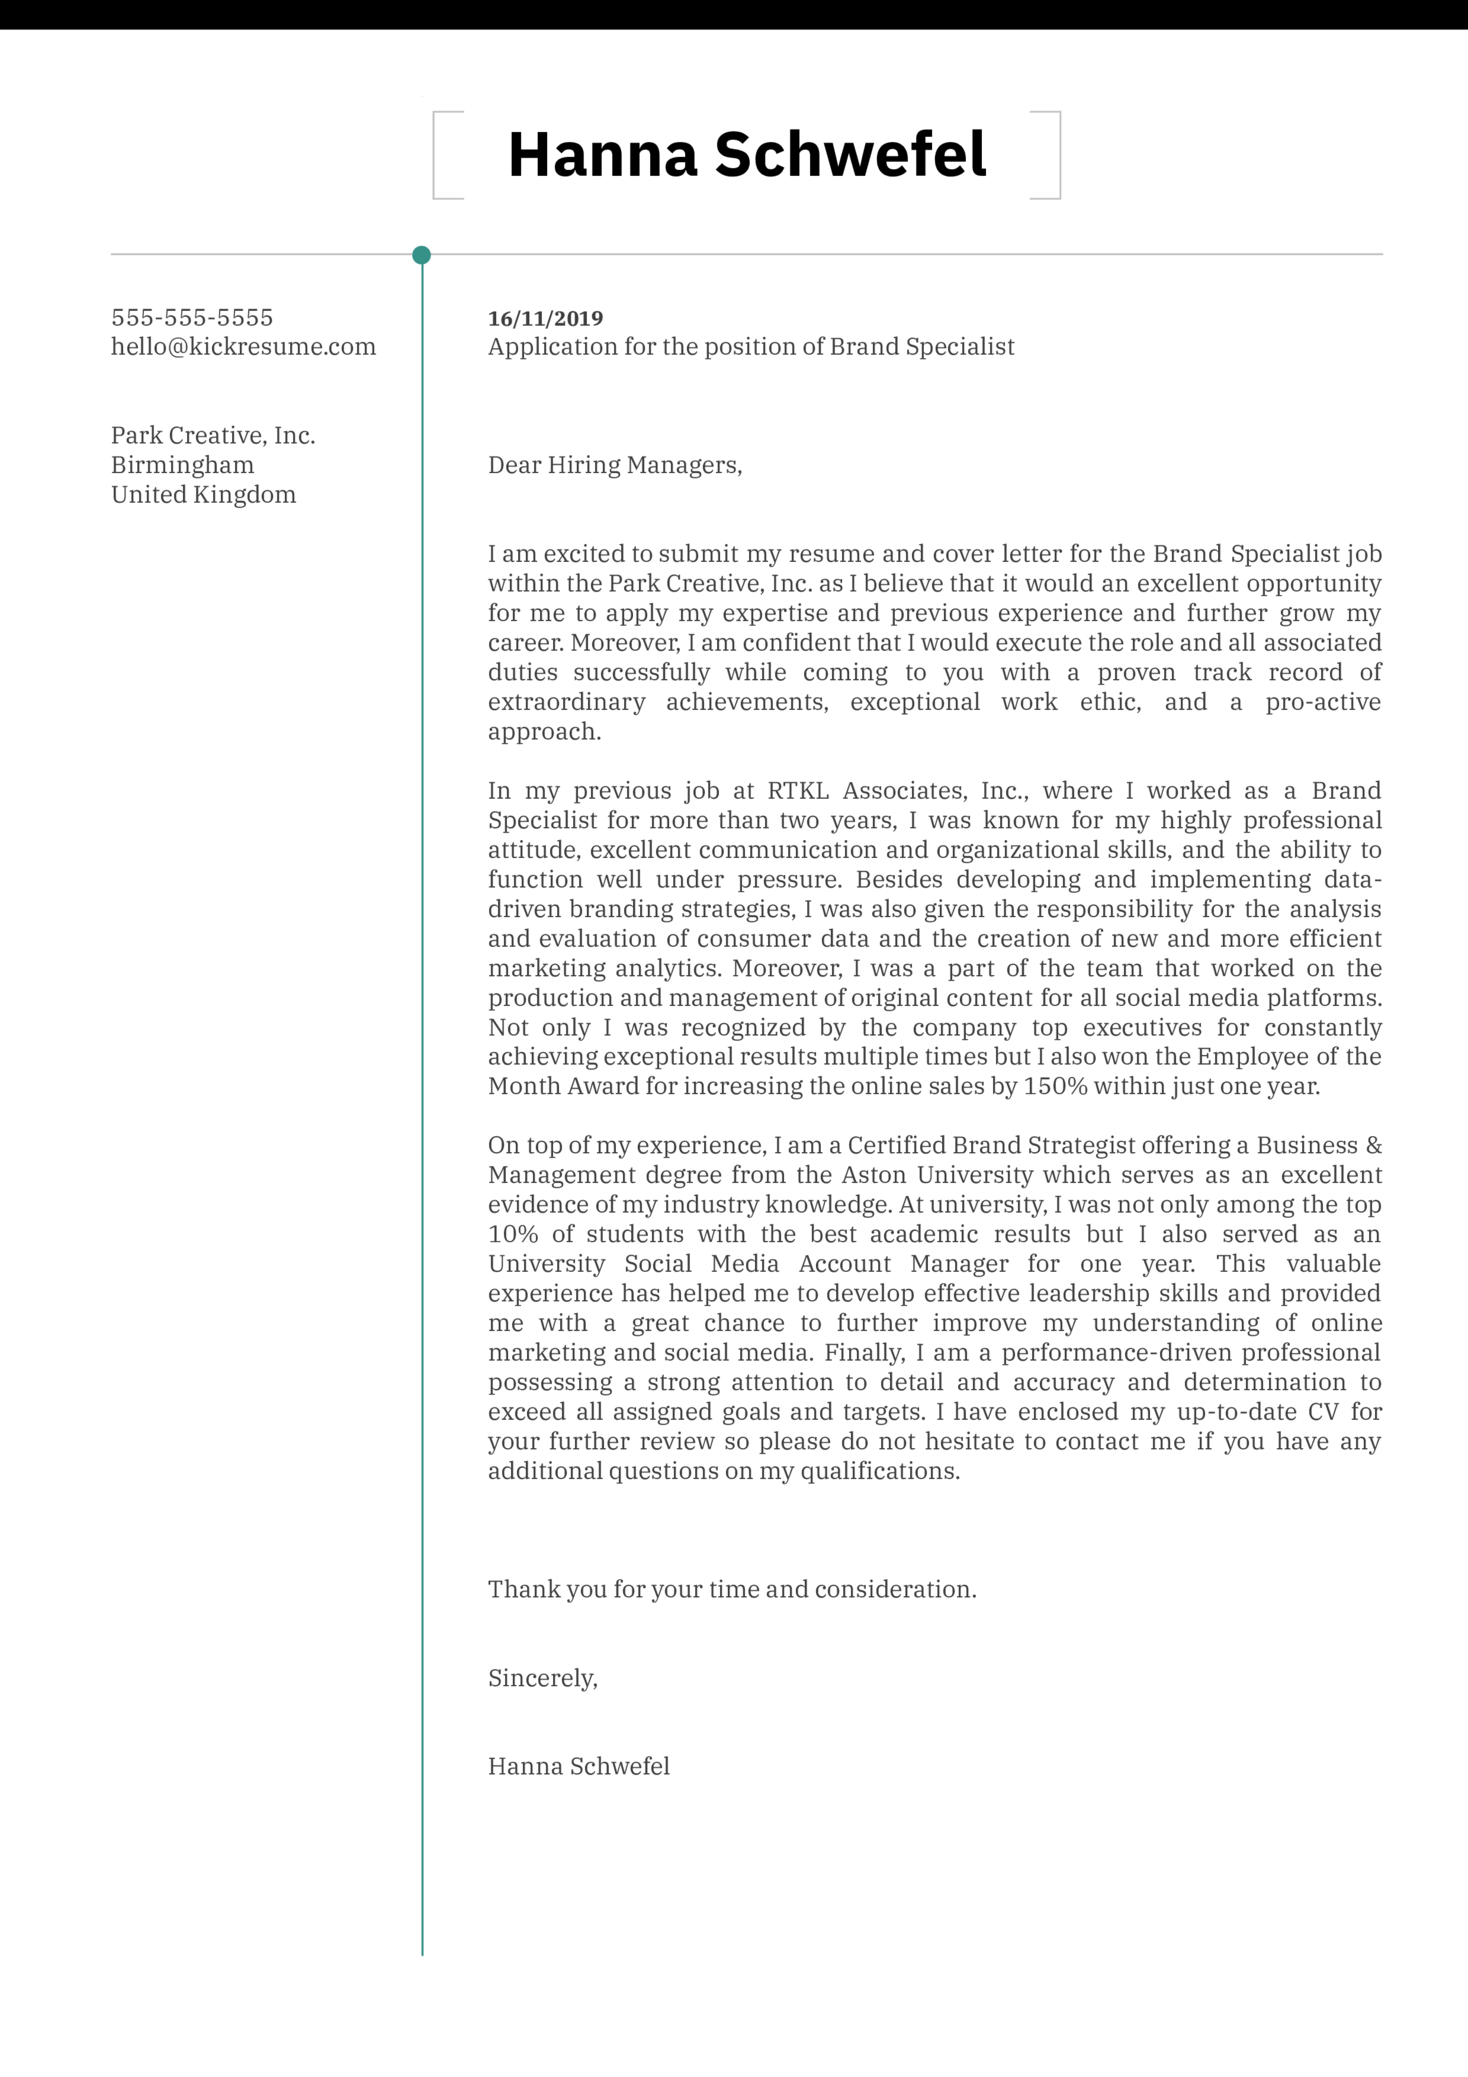 Brand Specialist Cover Letter Example